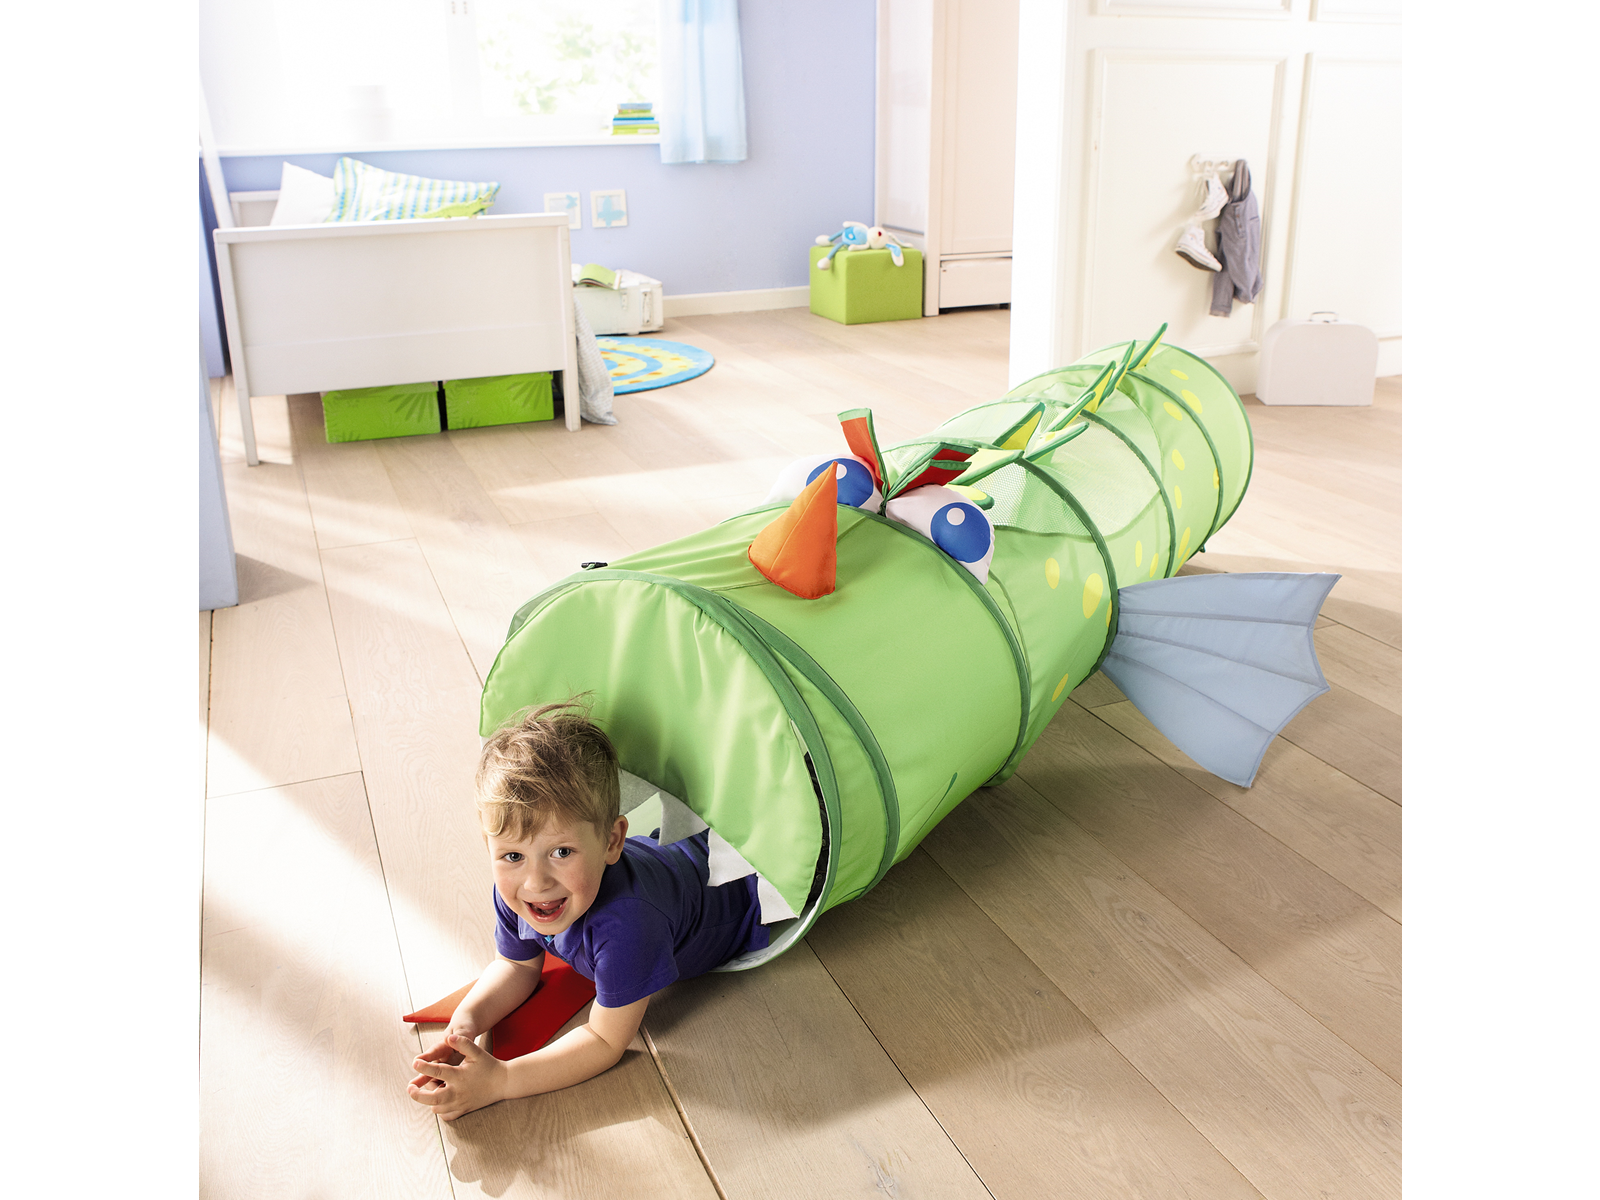 Haba Croco Kuno Crawling Tunnel - Buy Online - Playhouse of Dreams  - 1